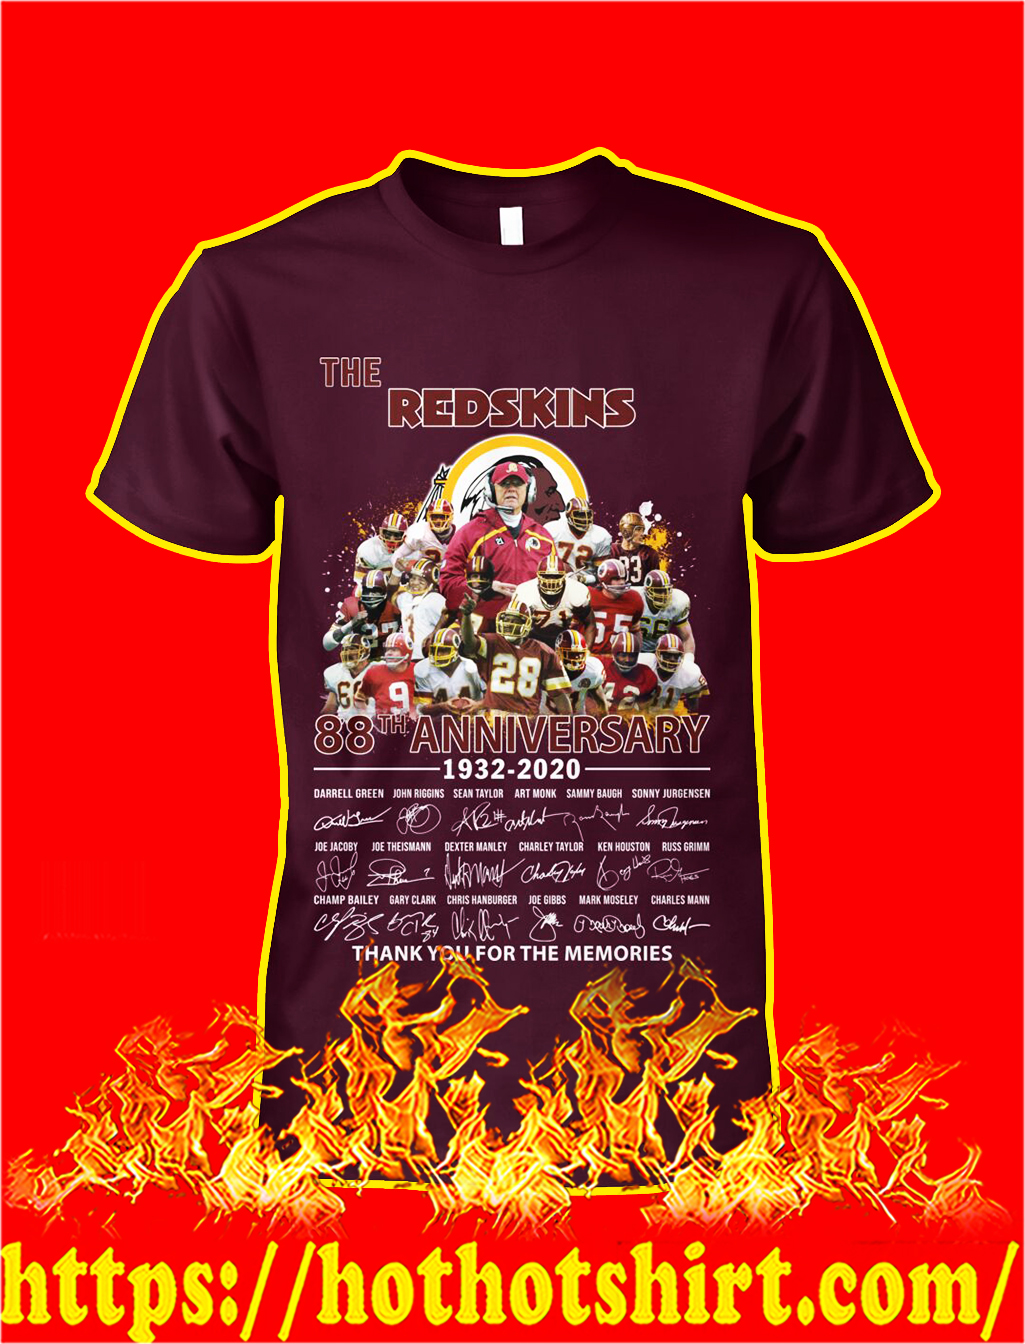 The redskins 88th anniversary thank you for the memories shirt